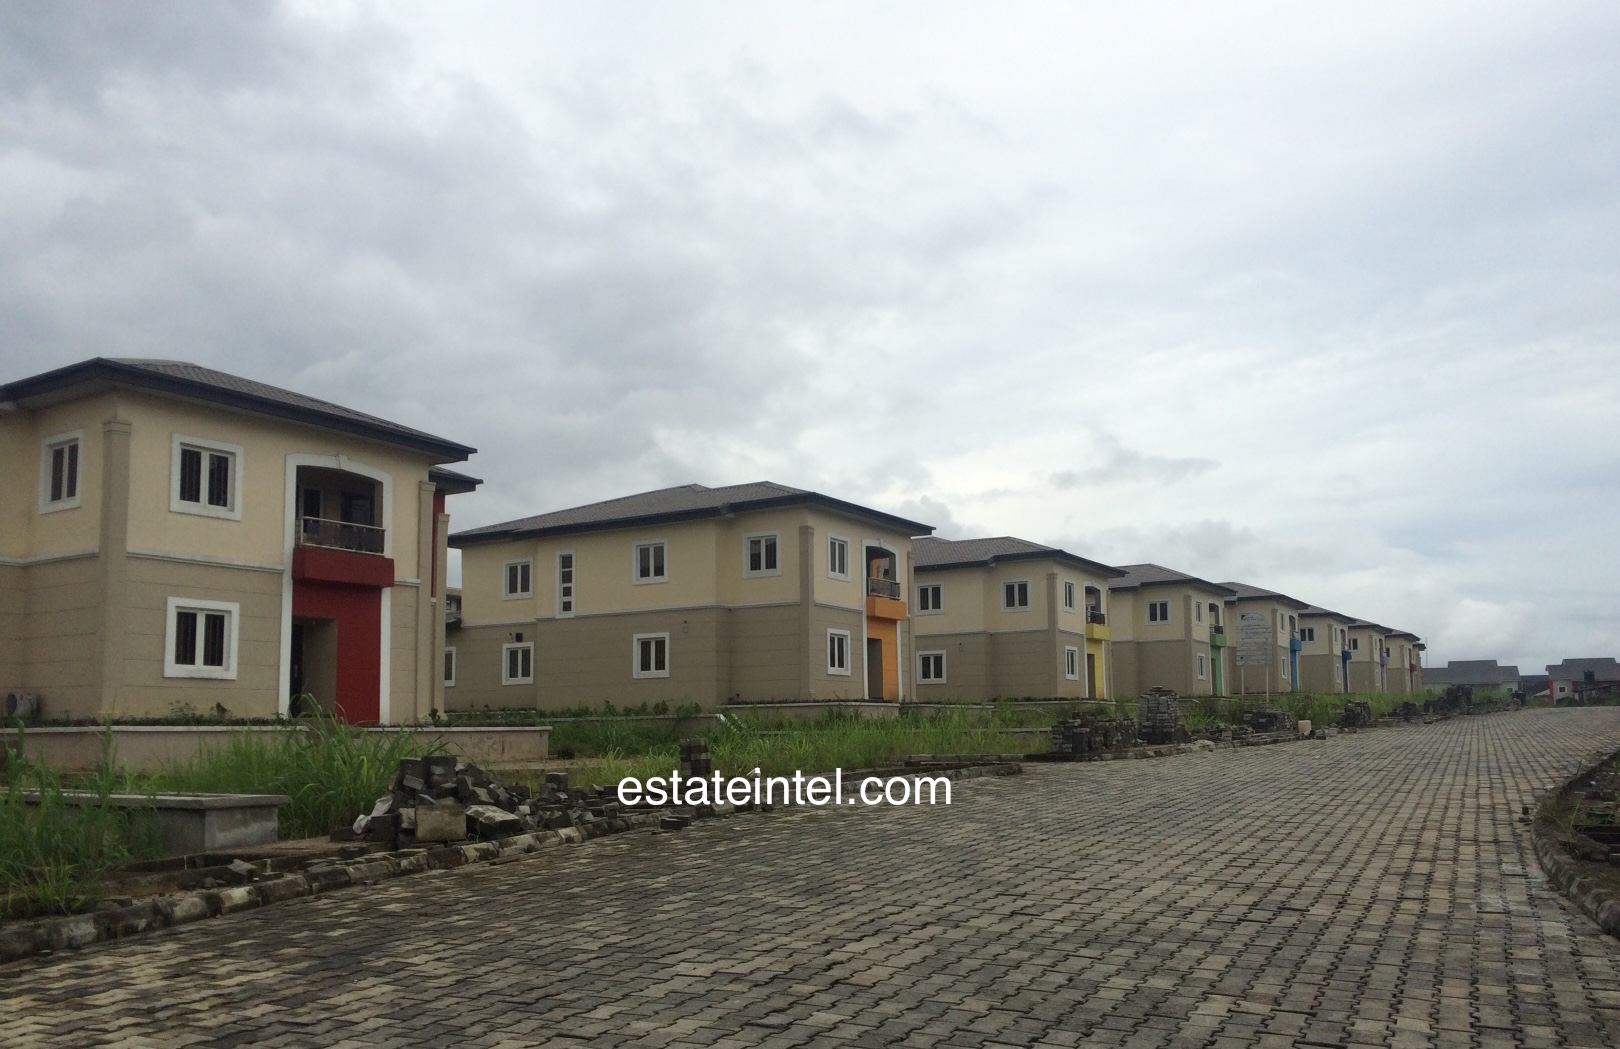 Detached Houses - Rainbow Town, Port Harcourt. Image Source: estateintel.com